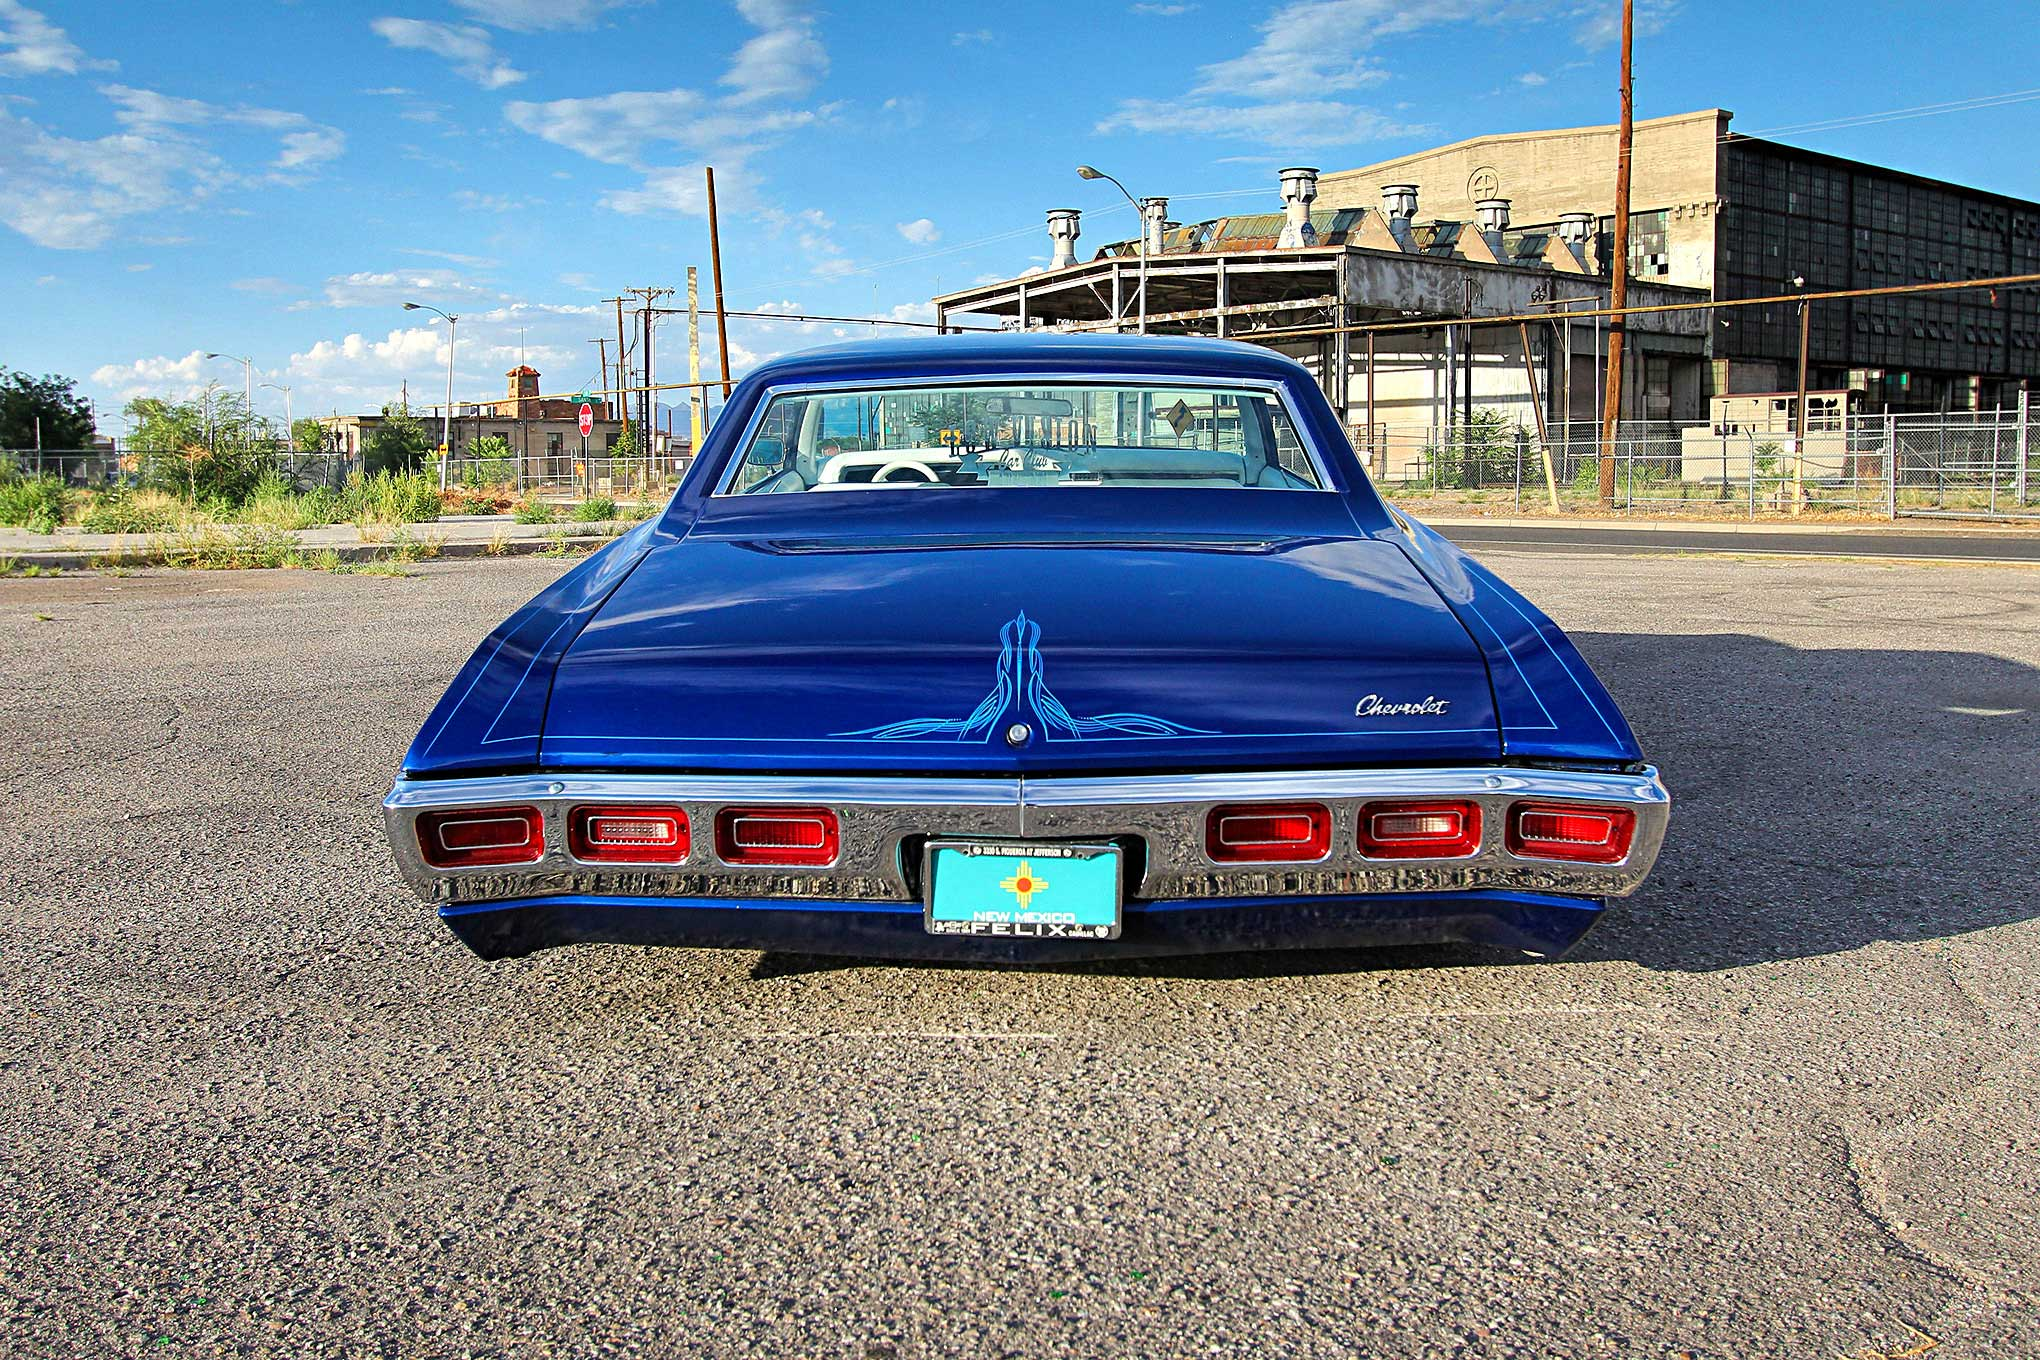 1969 Chevrolet Impala Blue Moon